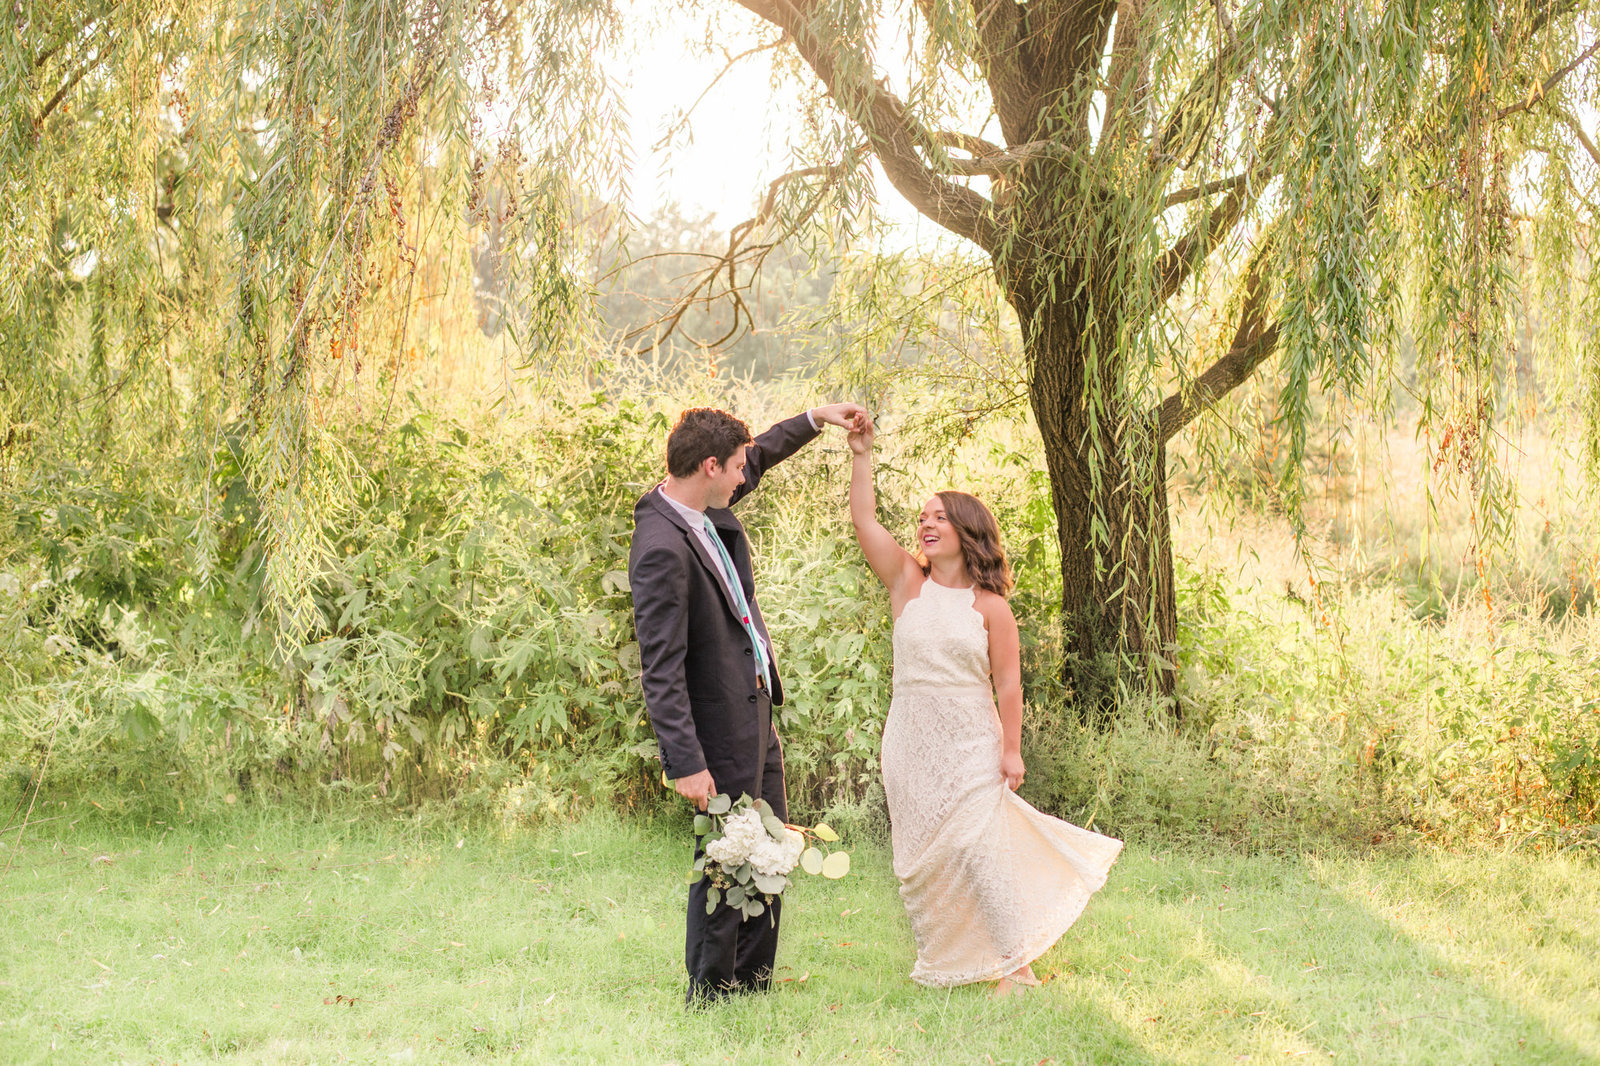 st-louis-wedding-photographer-alton-belleville-spring-stl-romantic-portraits-weddings-25